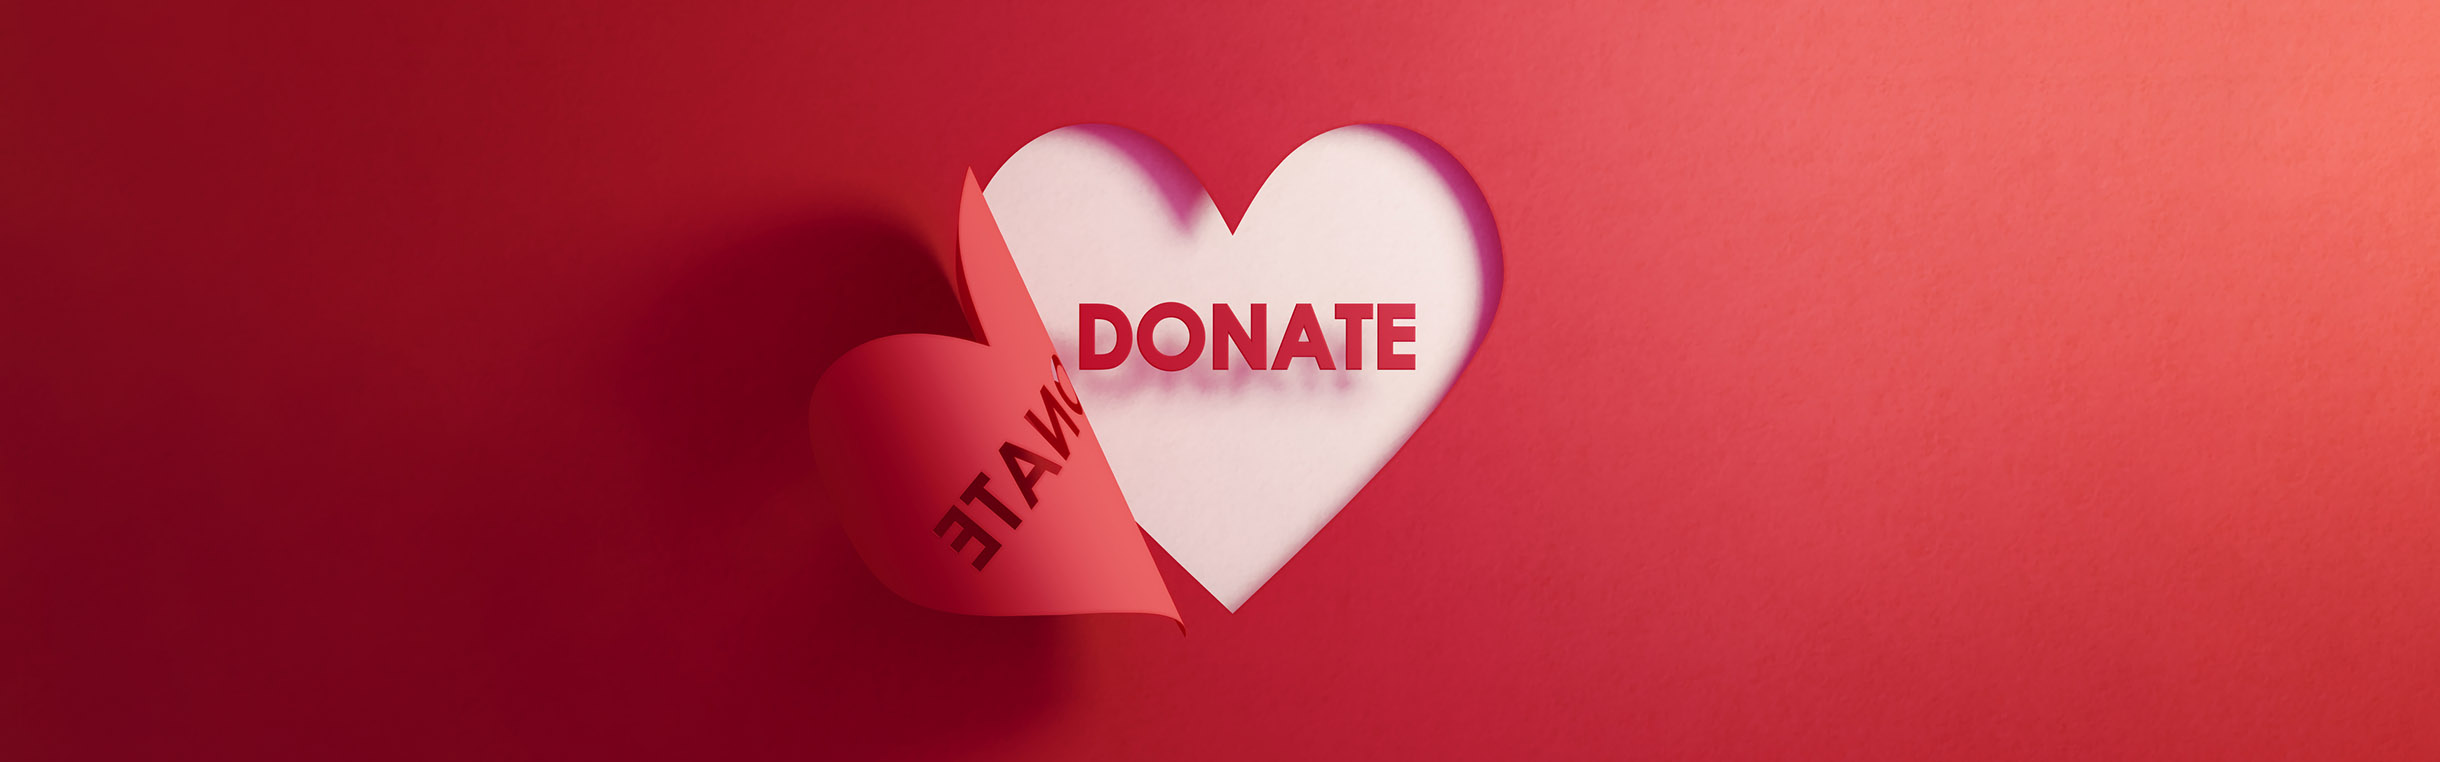 Qualified charitable donations